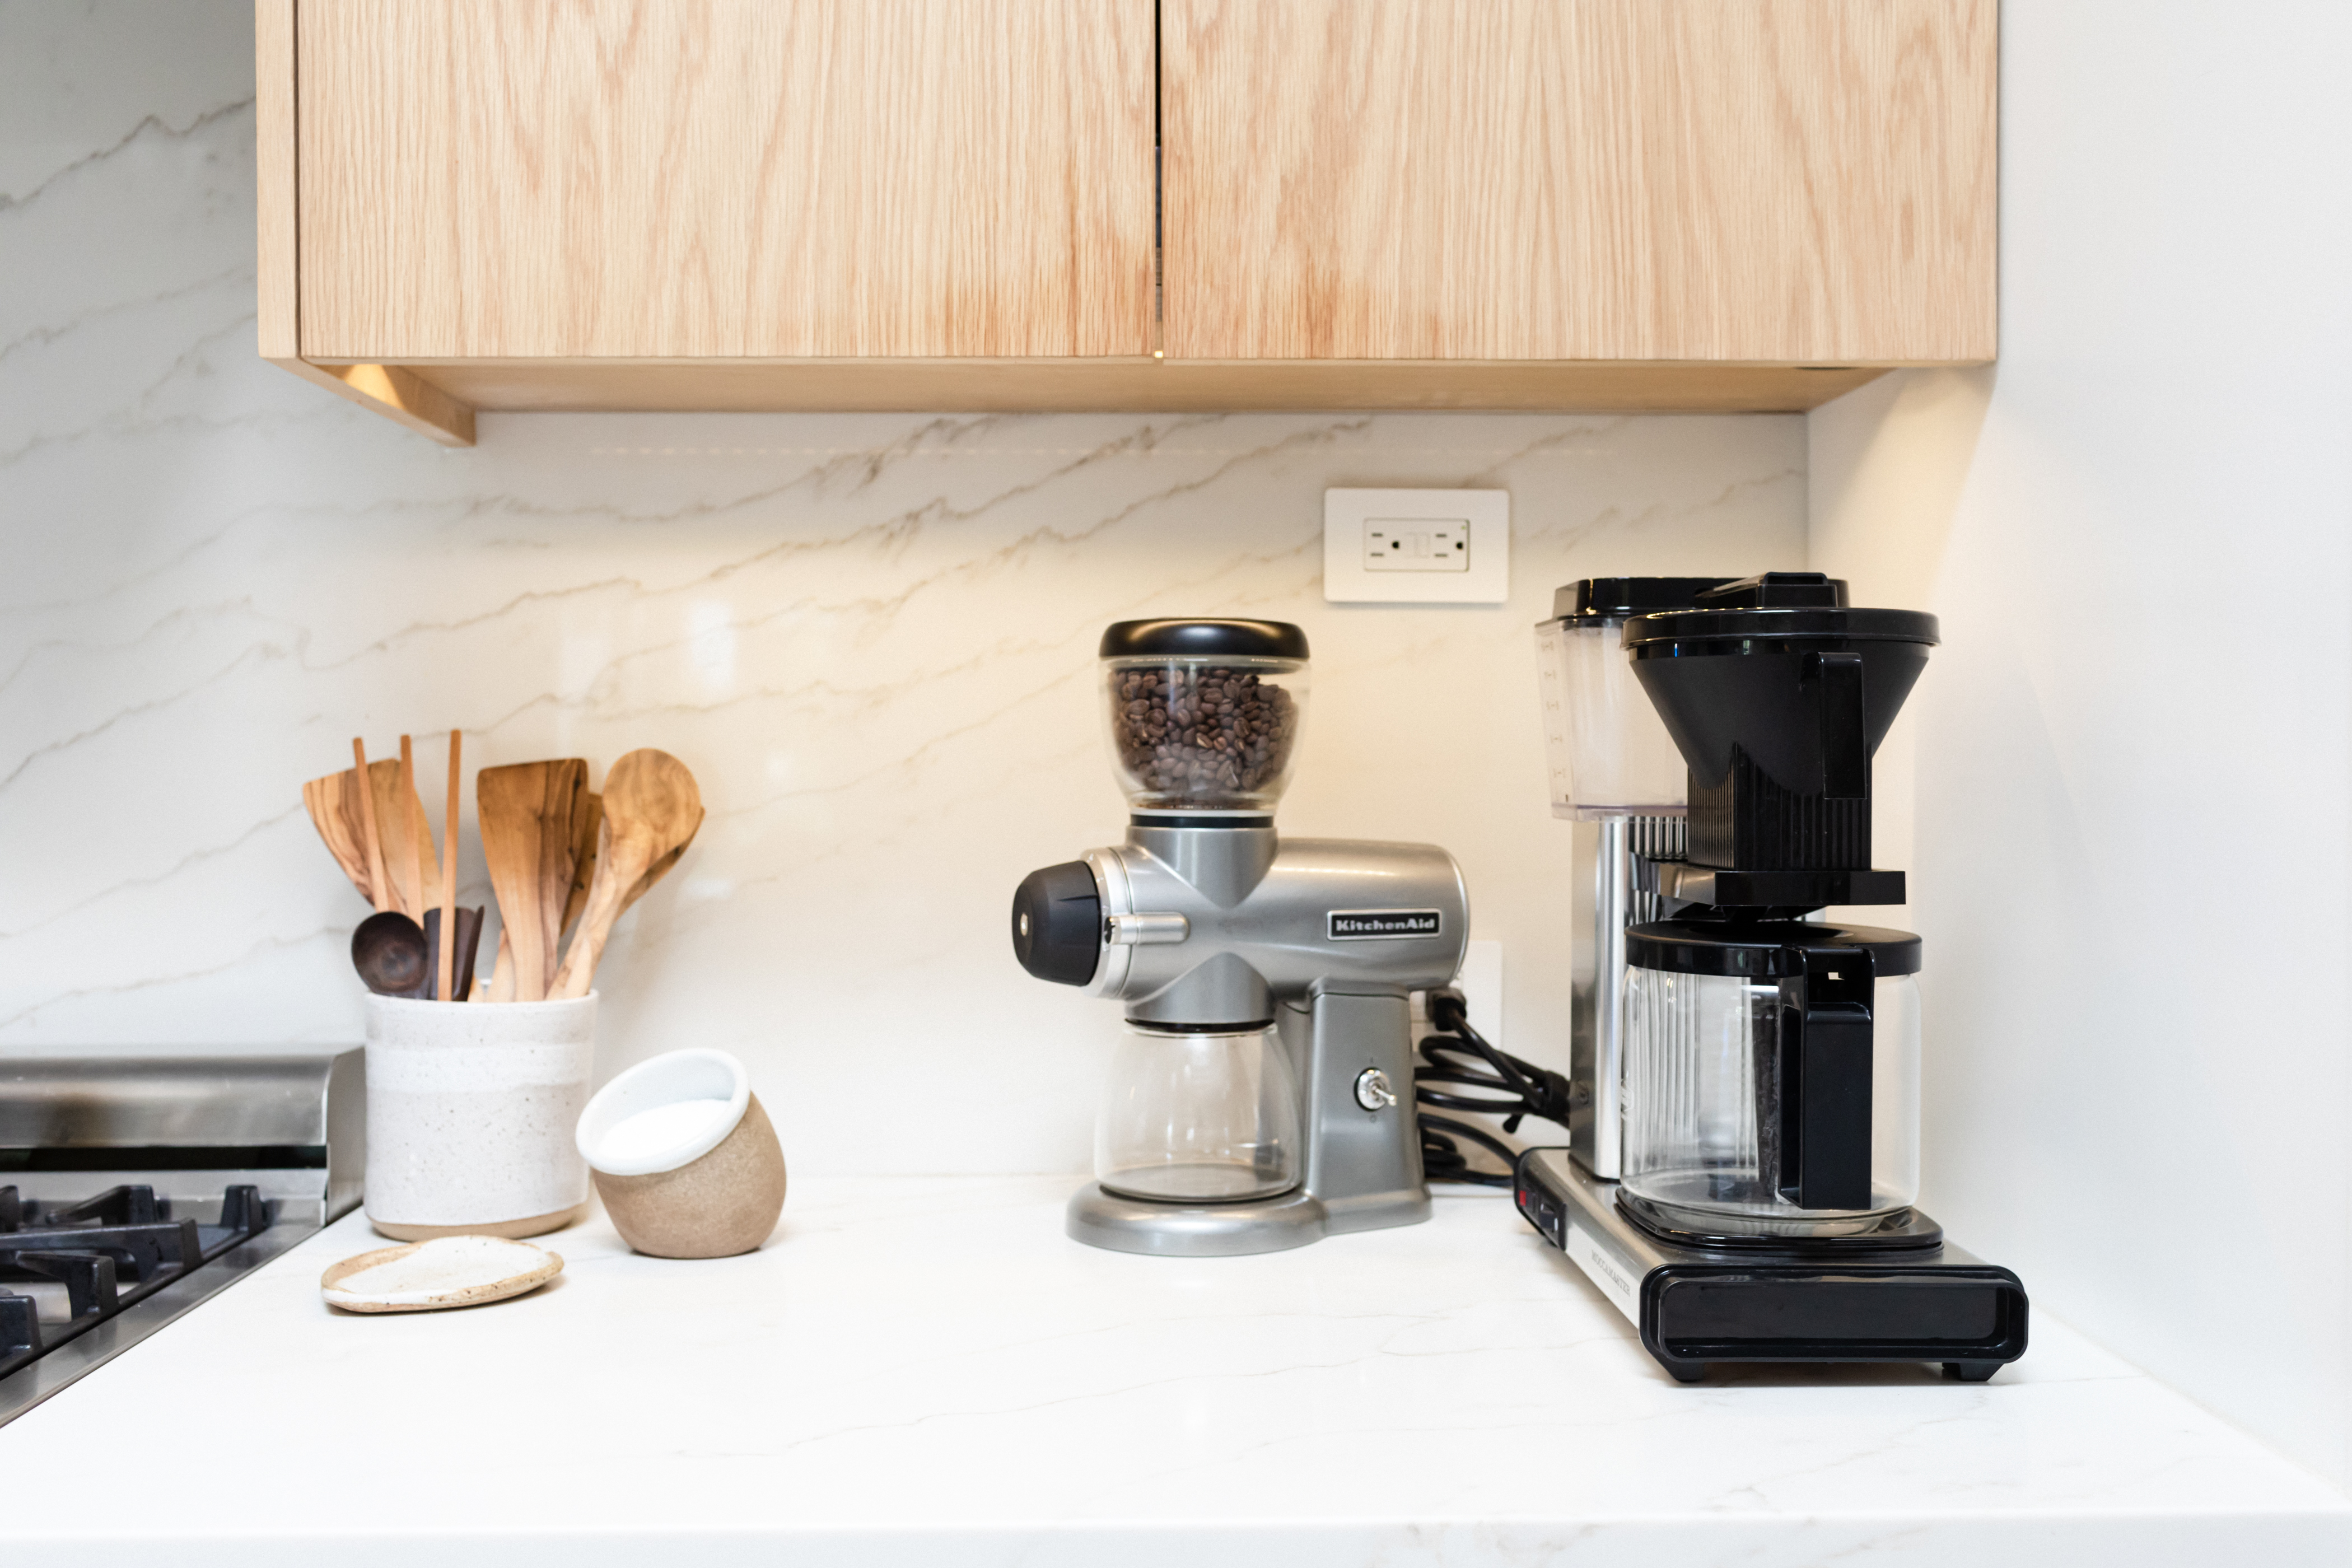 How to REALLY Clean a Coffee Machine